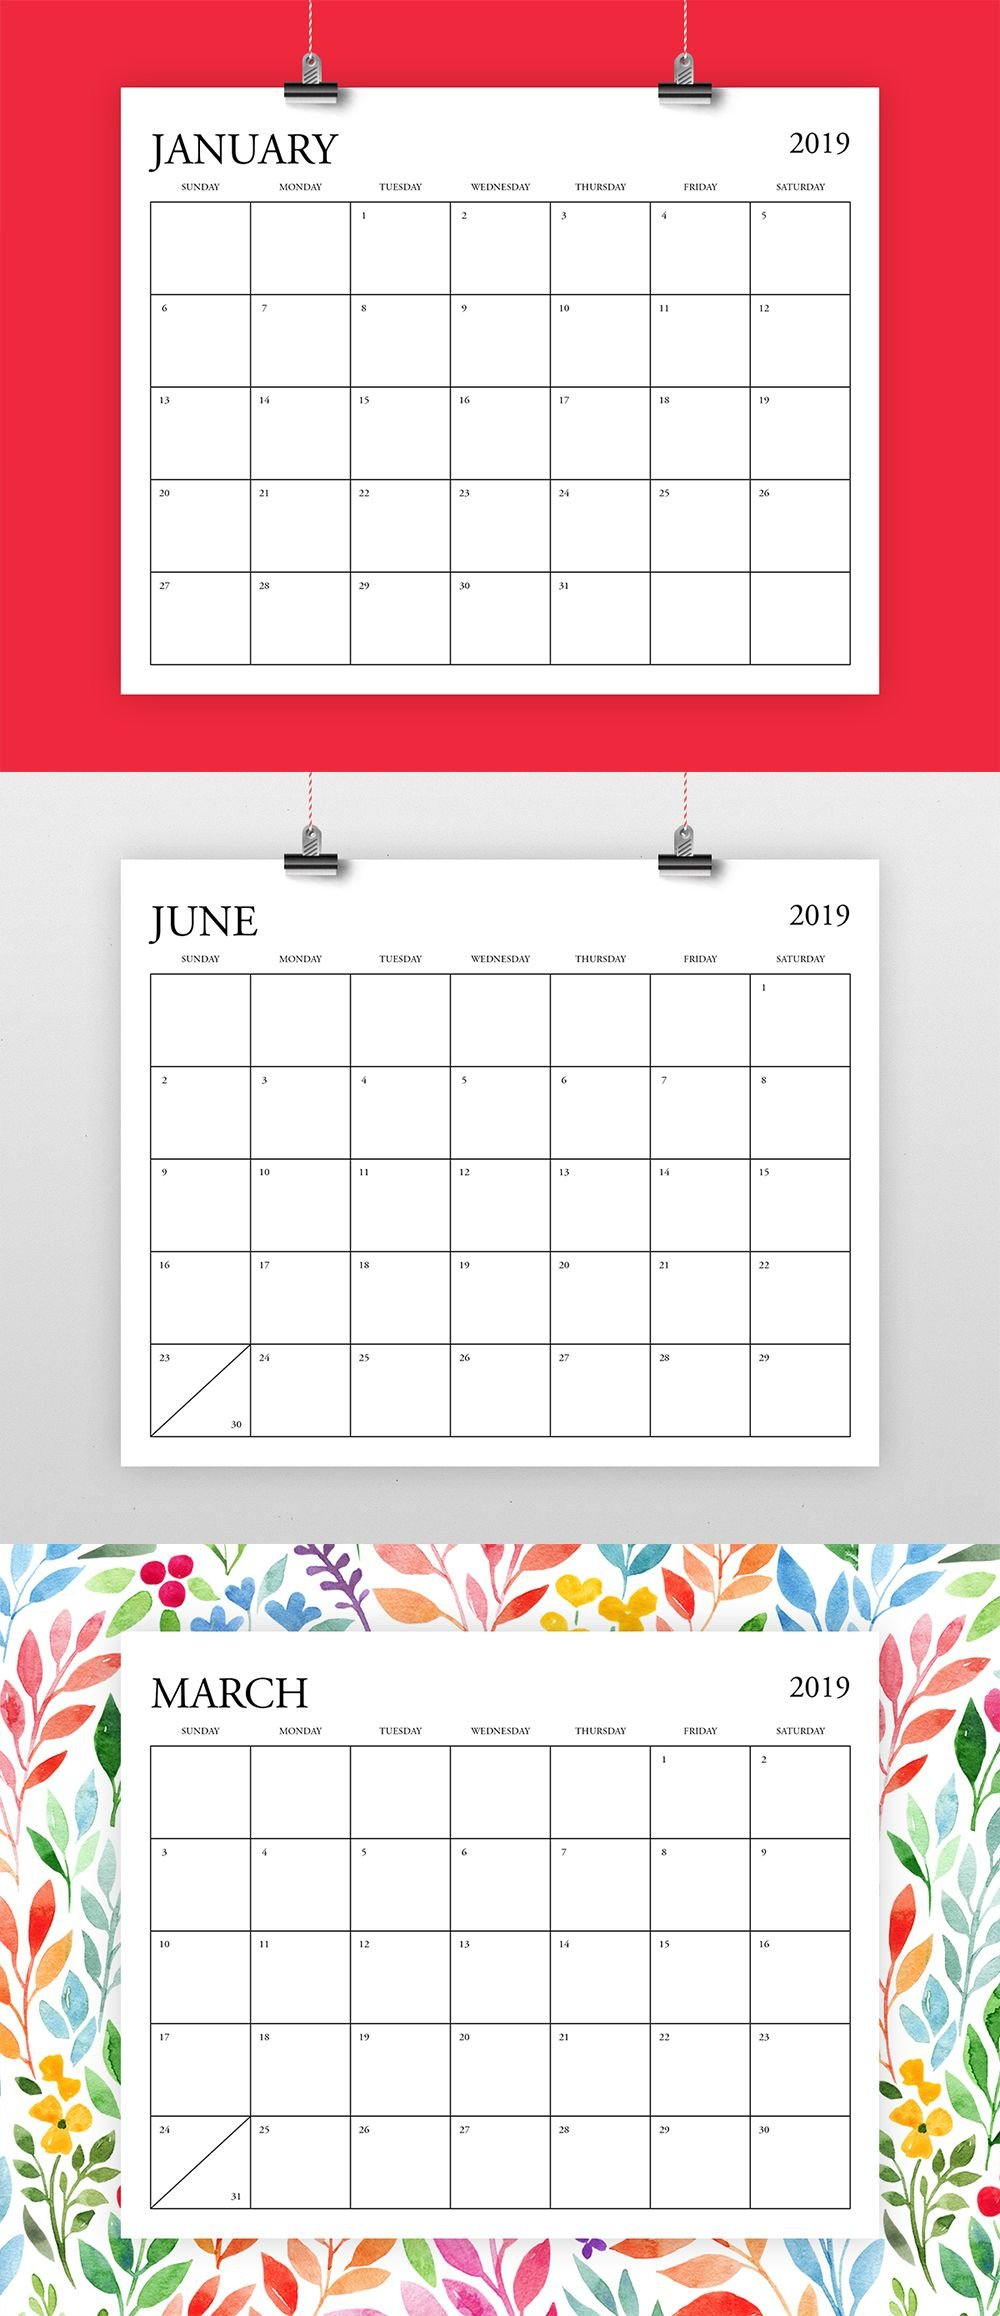 8.5 X 11 Calendar Template | Example Calendar Printable 8.5 X 11 Printer Friendly Calendar